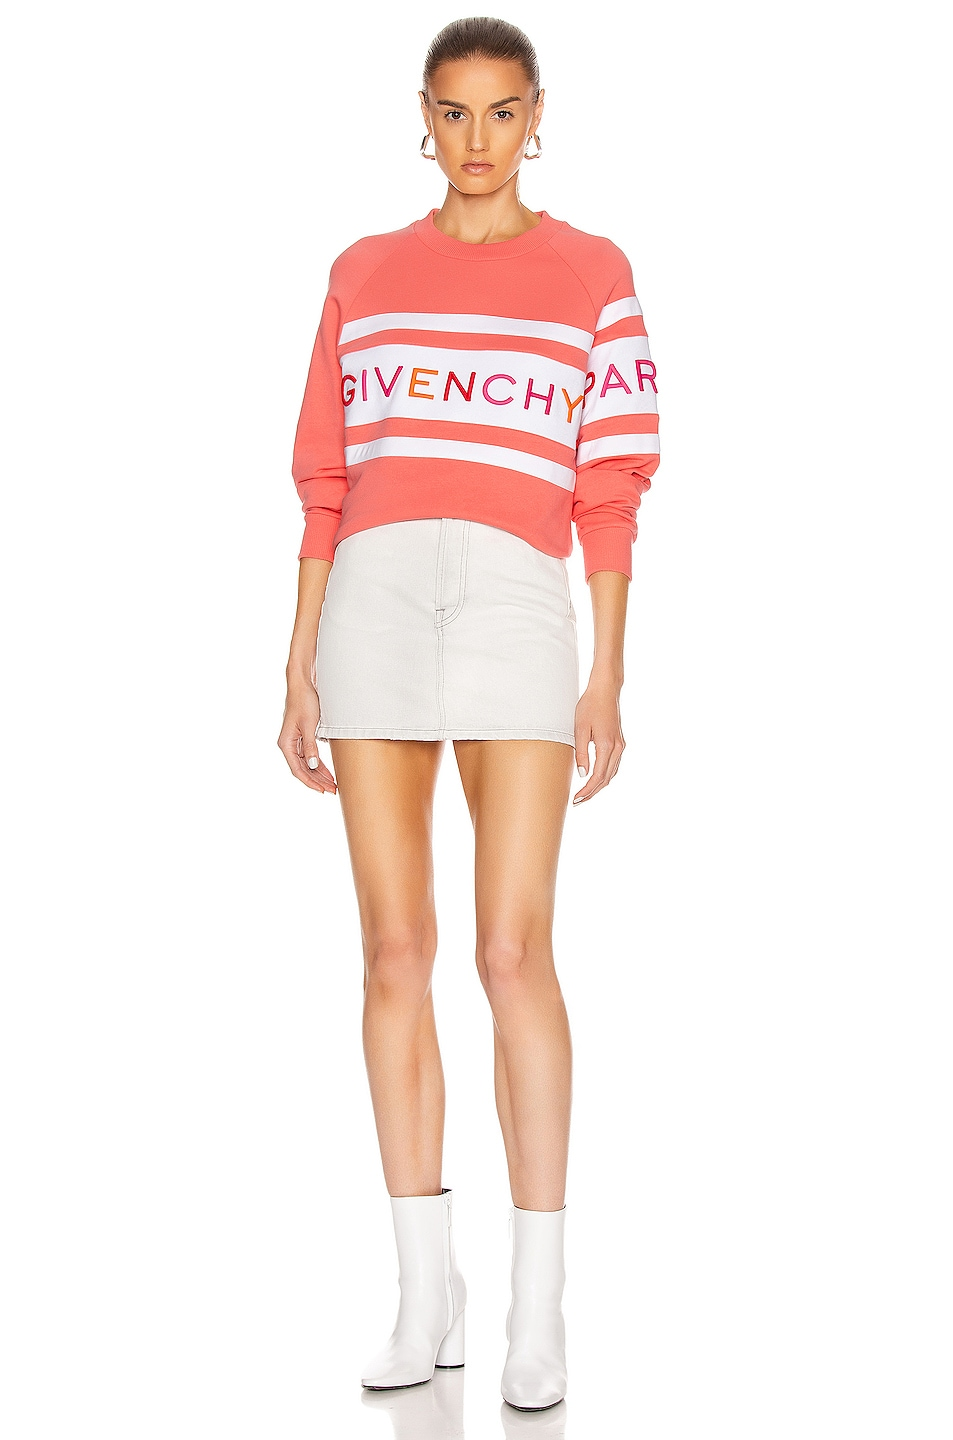 Image 5 of Givenchy Raglan Long Sleeve Sweatshirt in Coral & White